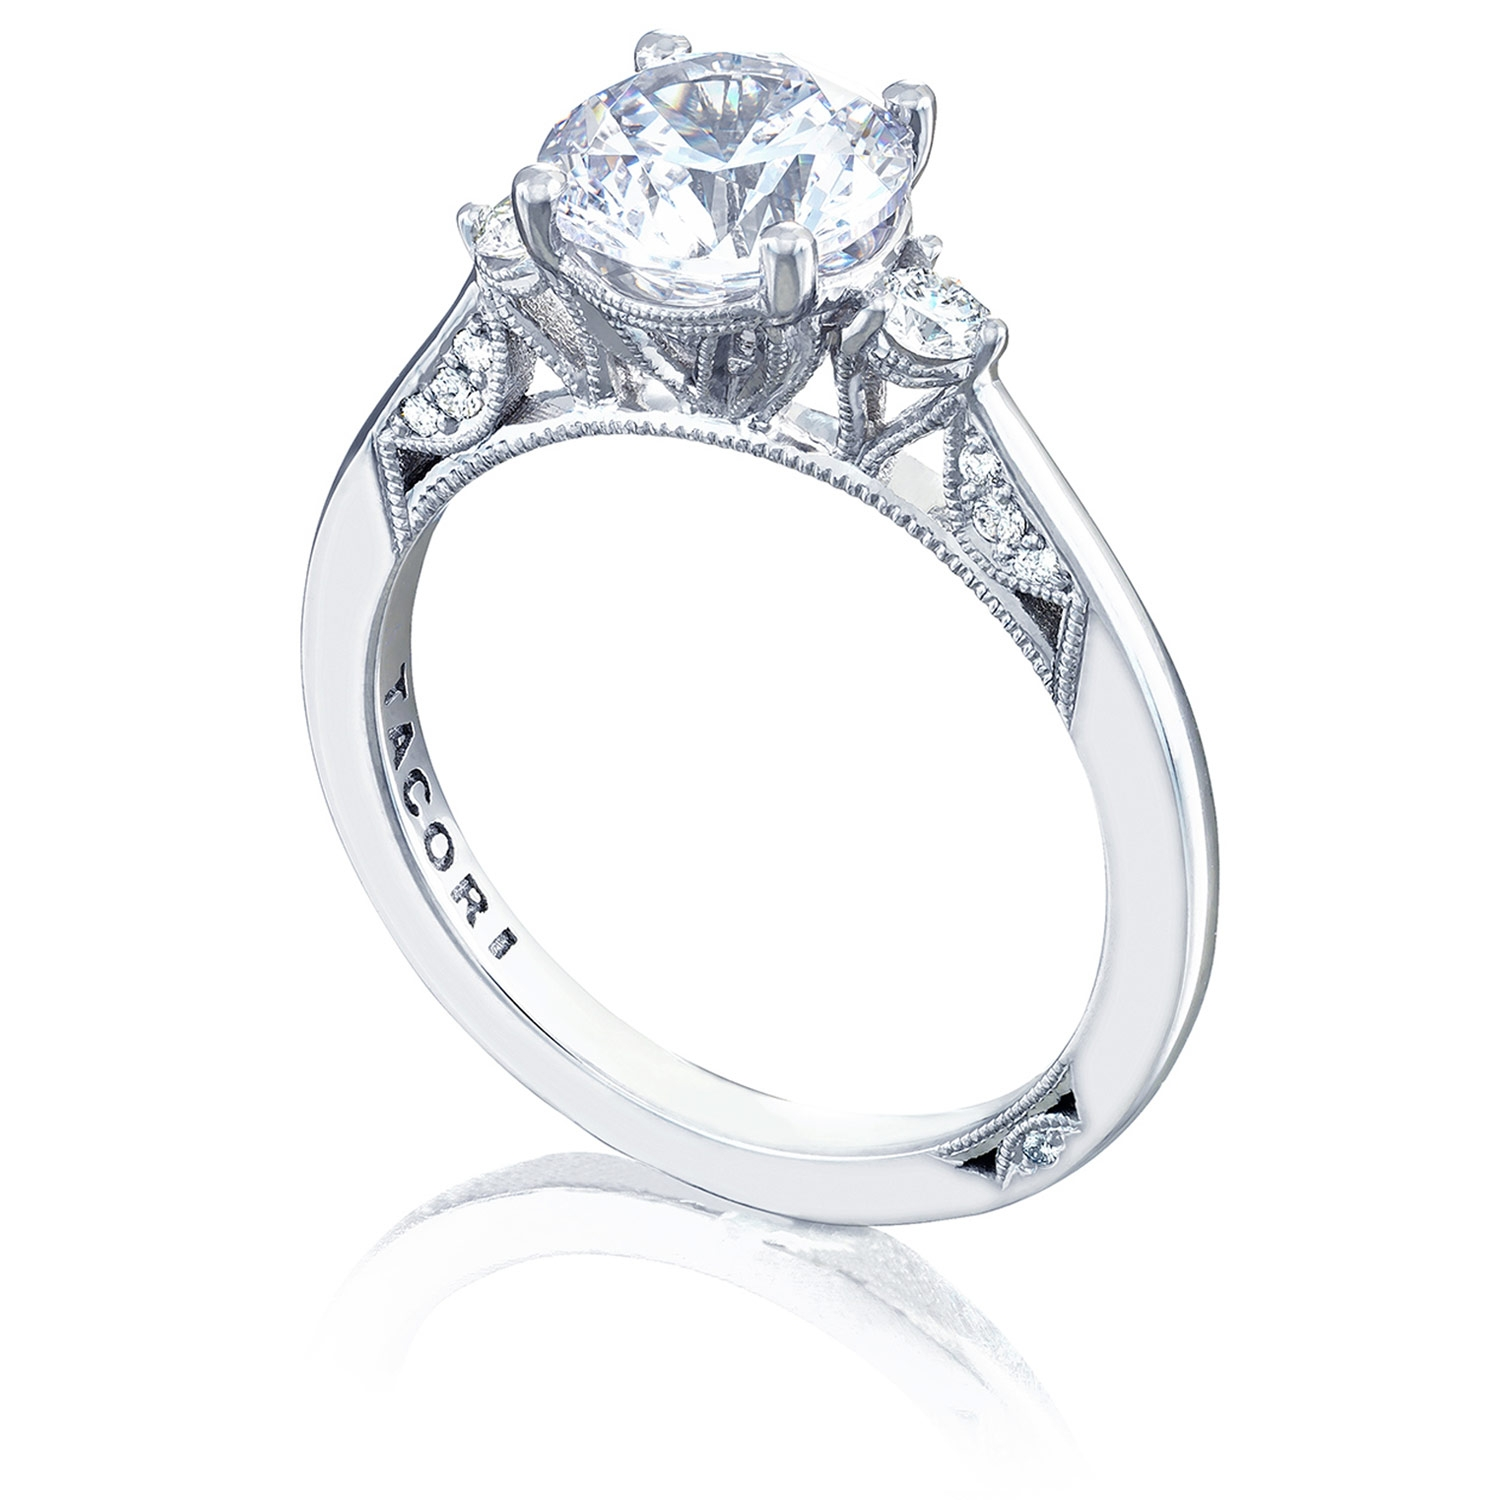 2656RD75 Platinum Simply Tacori Engagement Ring Alternative View 2